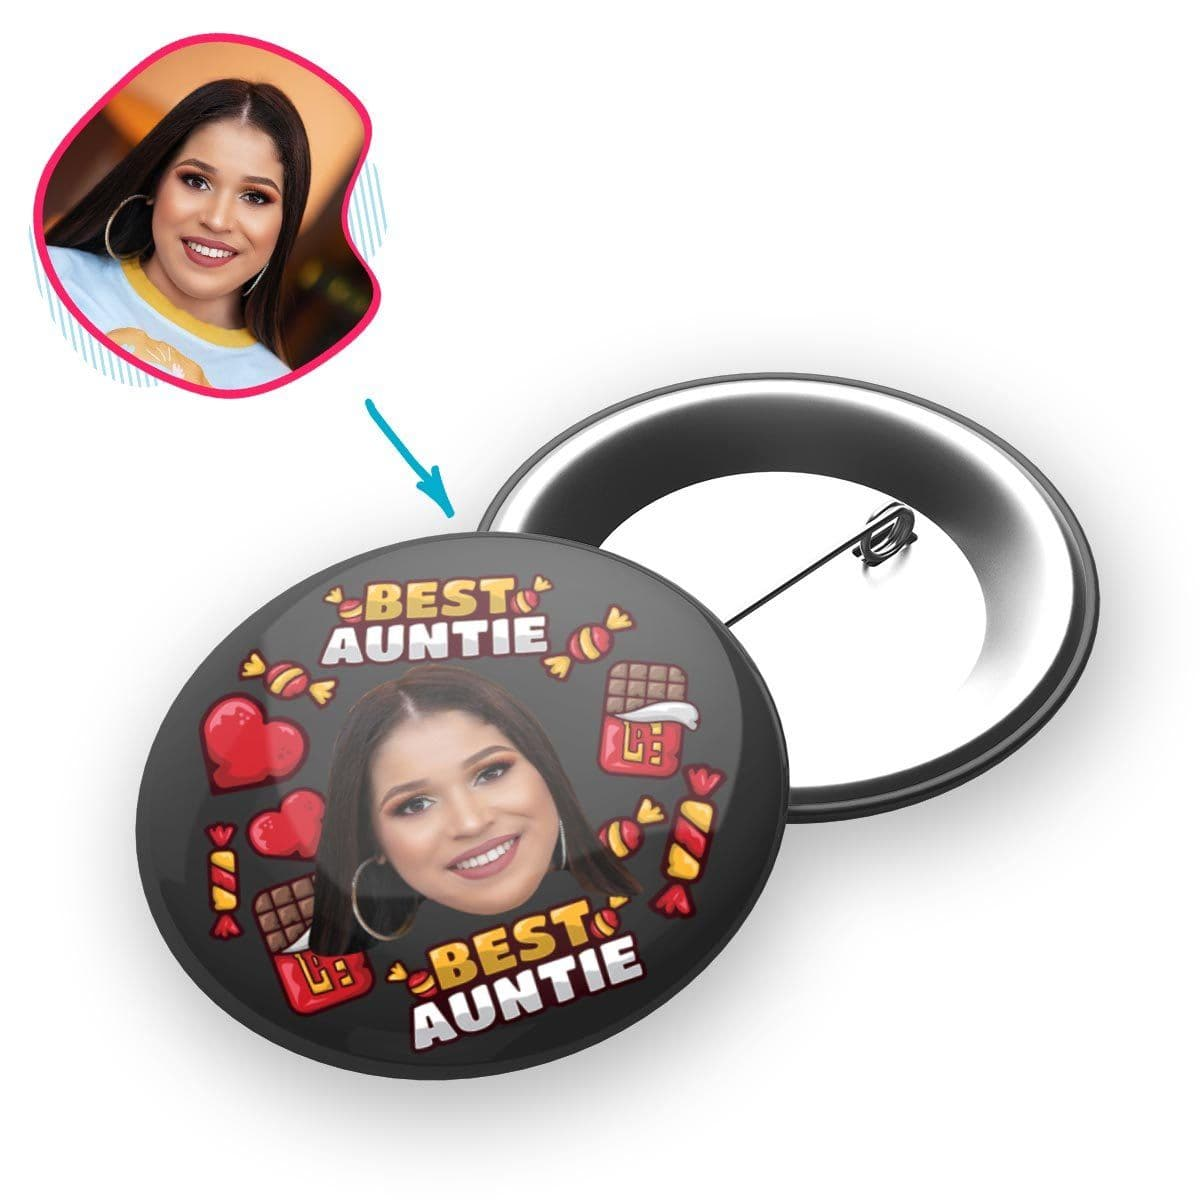 Dark Auntie personalized pin with photo of face printed on it